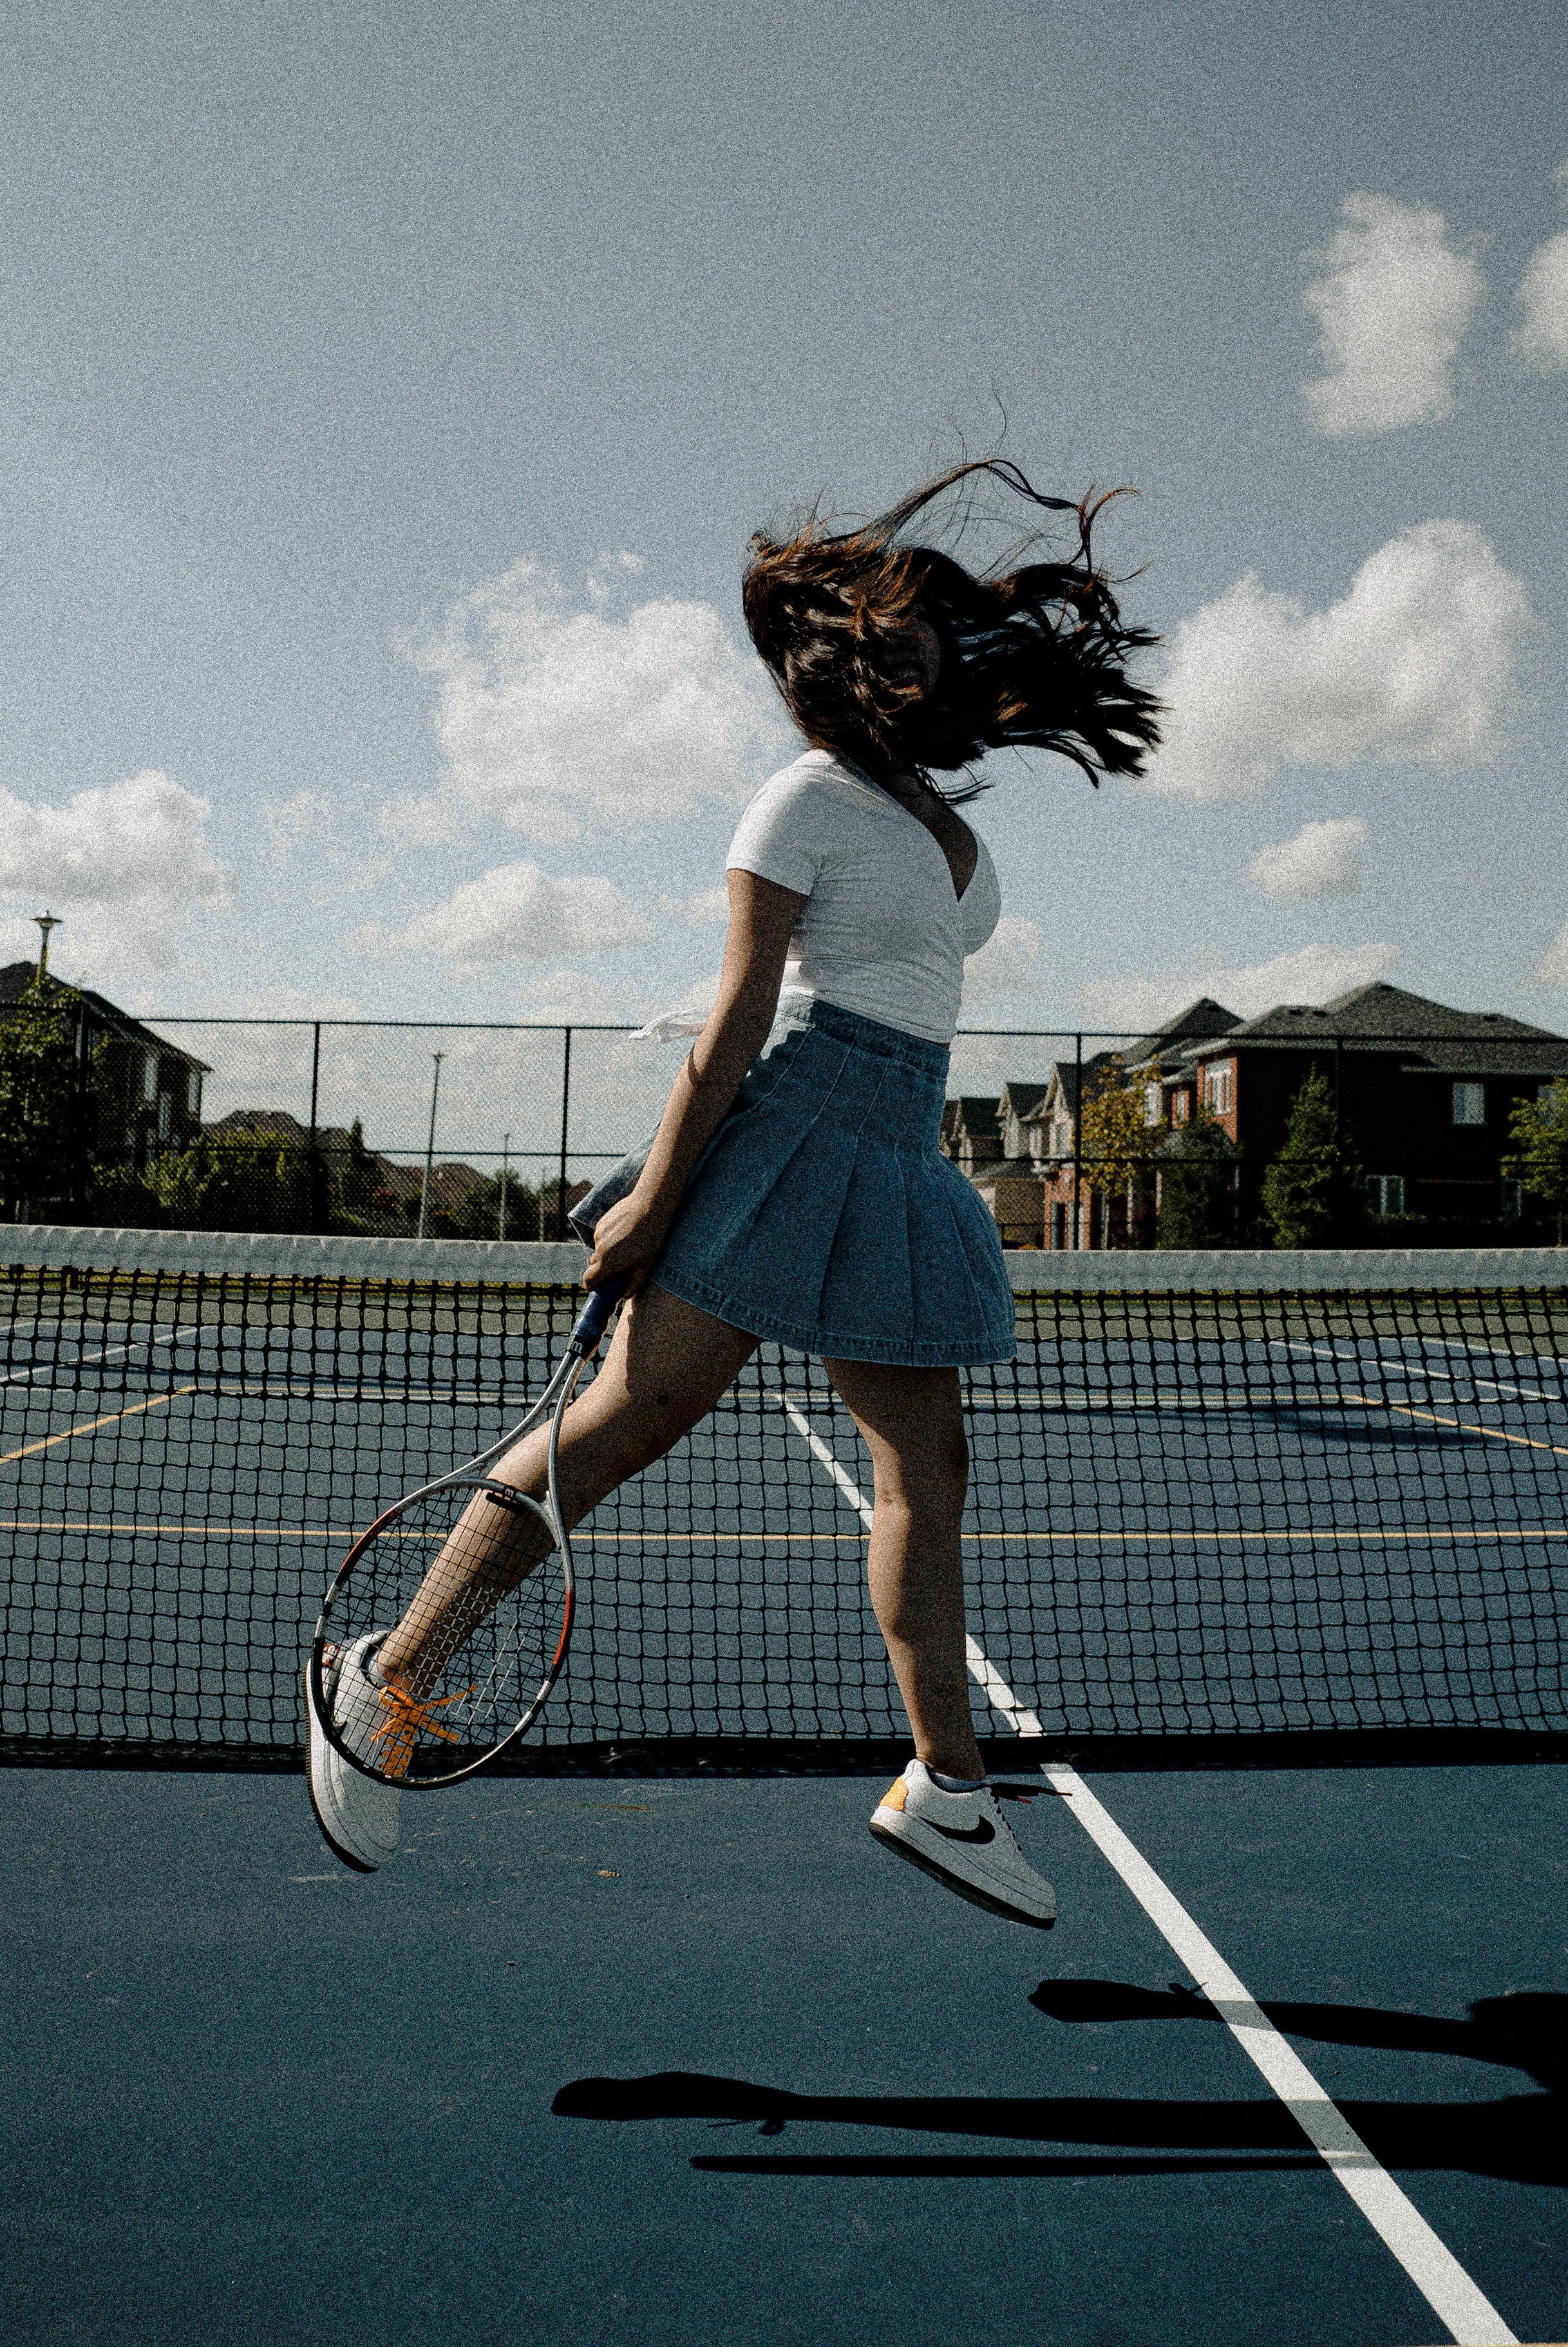 A girl in a tennis court. | Source: Pexels/Wendy Wei